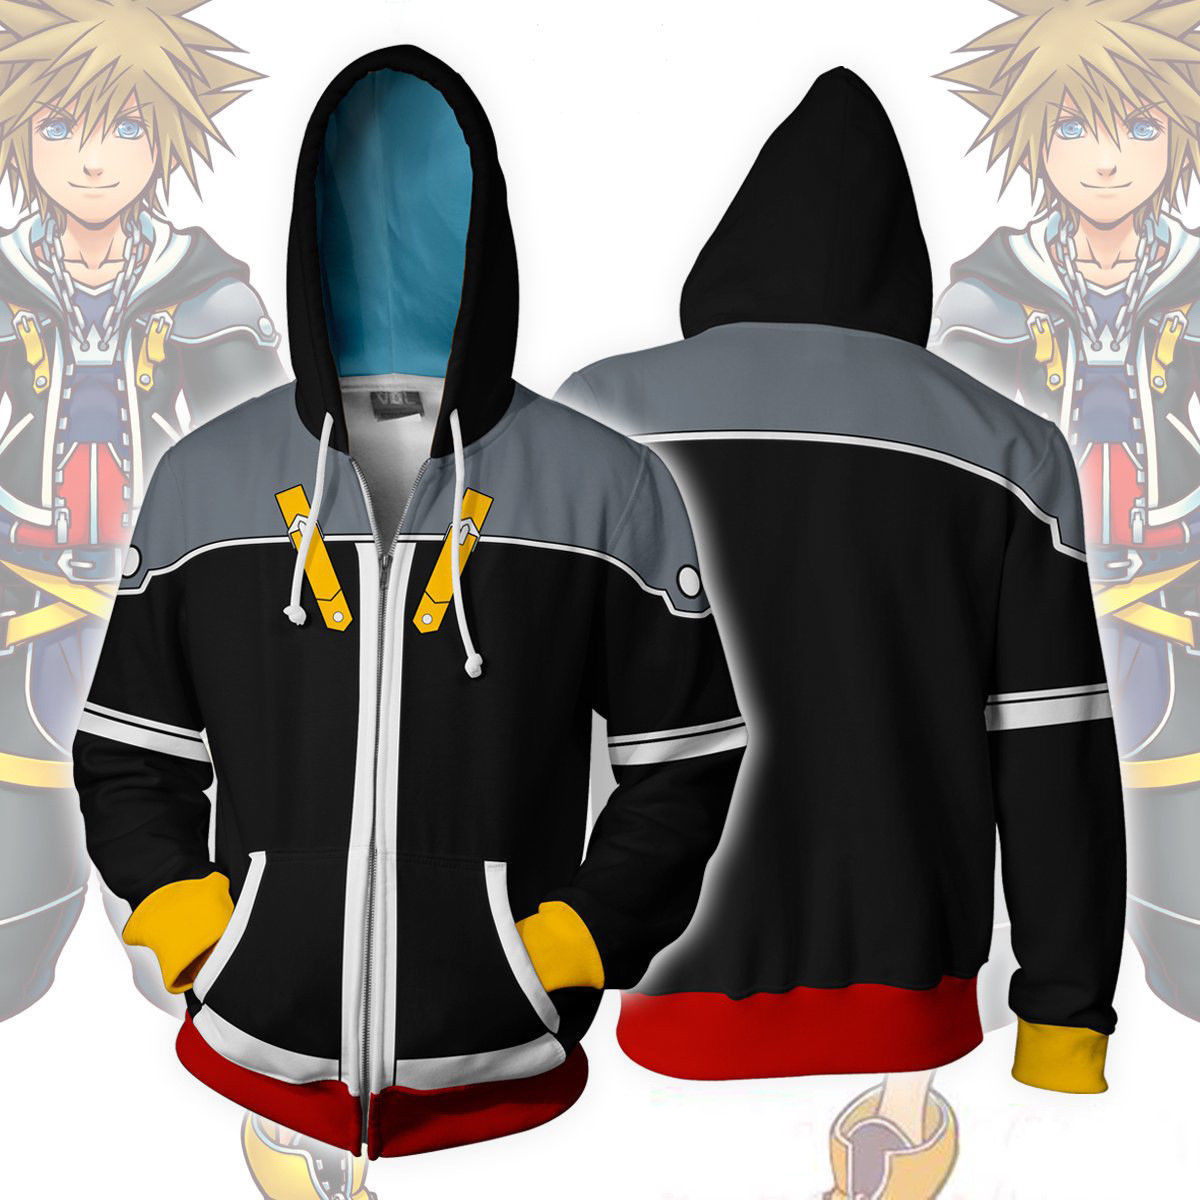 Anime Kingdom Hearts 2 Sora 3D Zipper Hoodie Jacket Coat Uniform Cosplay Costume Sweatshirt Outfit Cardigan Hooded plus size New